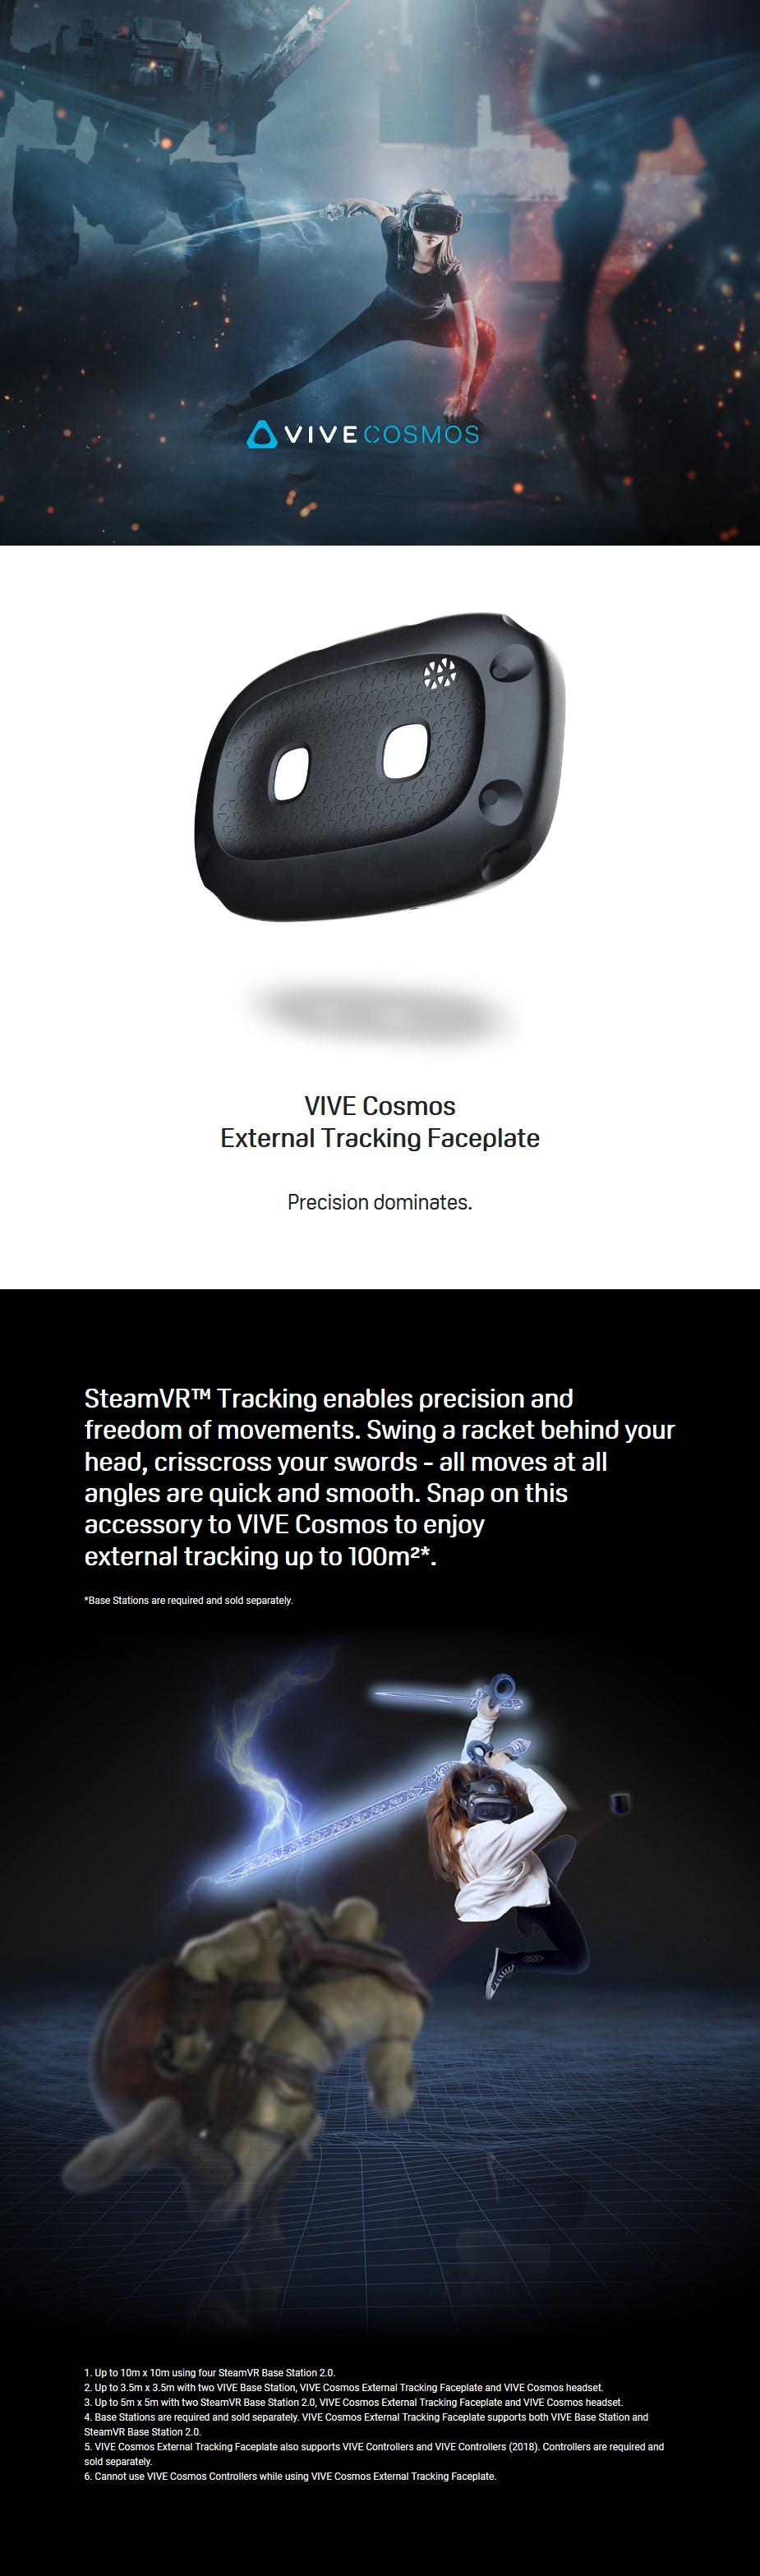 HTC Vive Cosmos External Tracking Faceplate - Overview 1